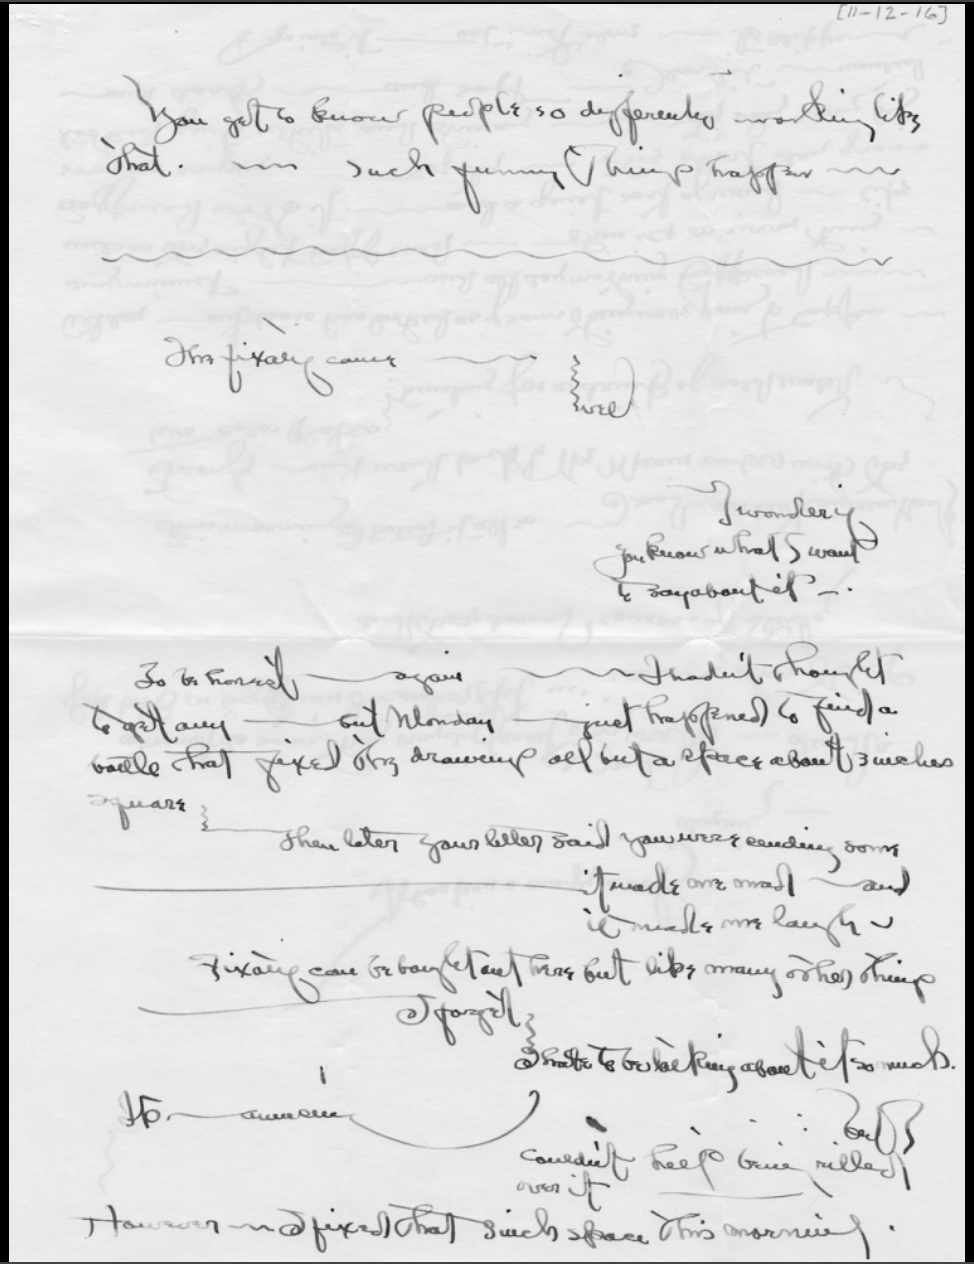 Letter by O'Keeffe, 1916